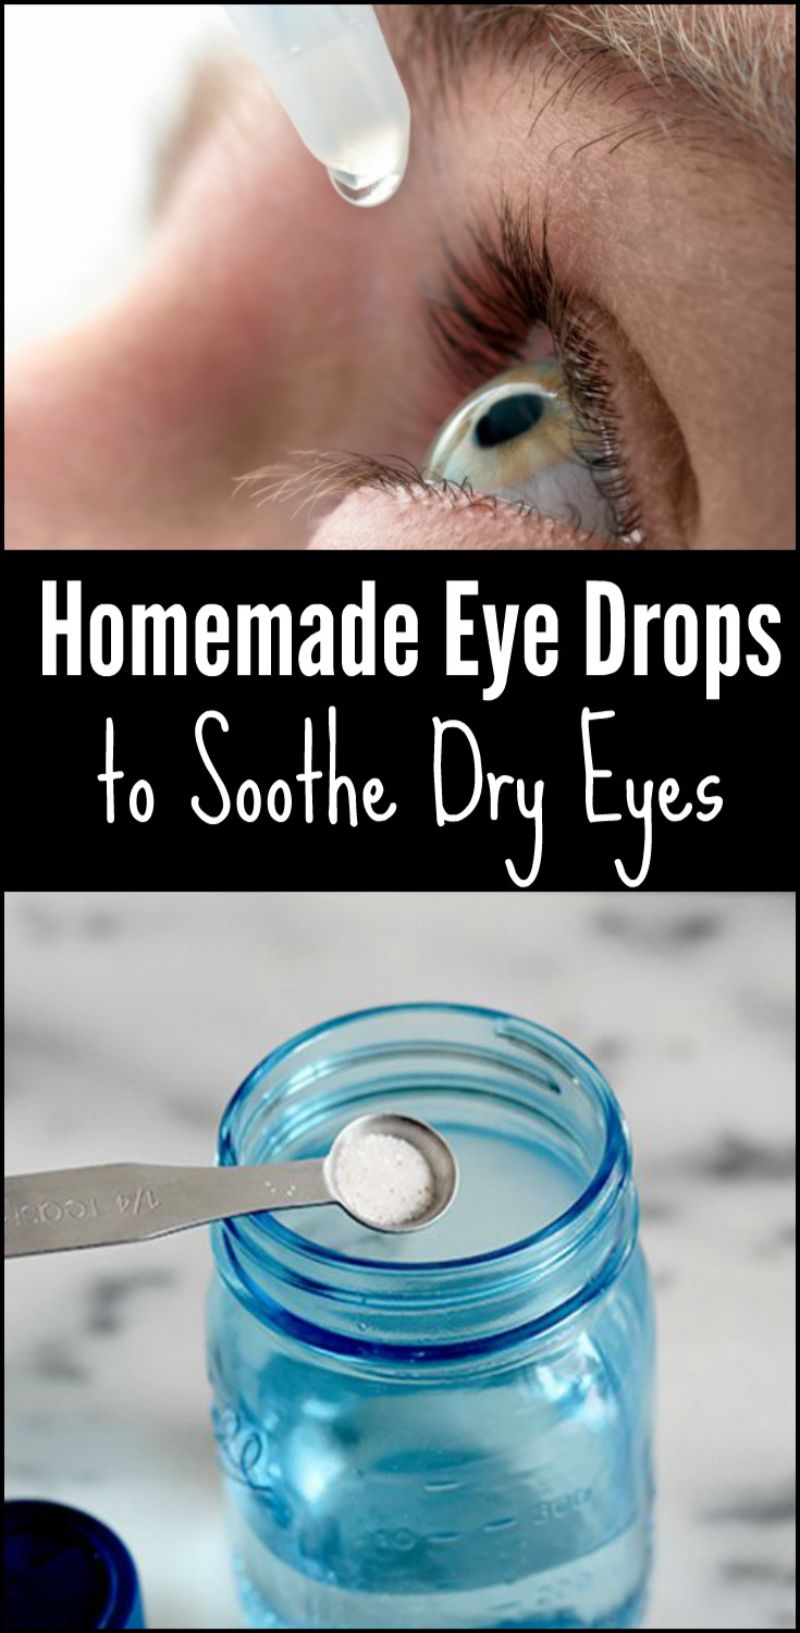 Homemade Eye Drops to Soothe Dry Eyes